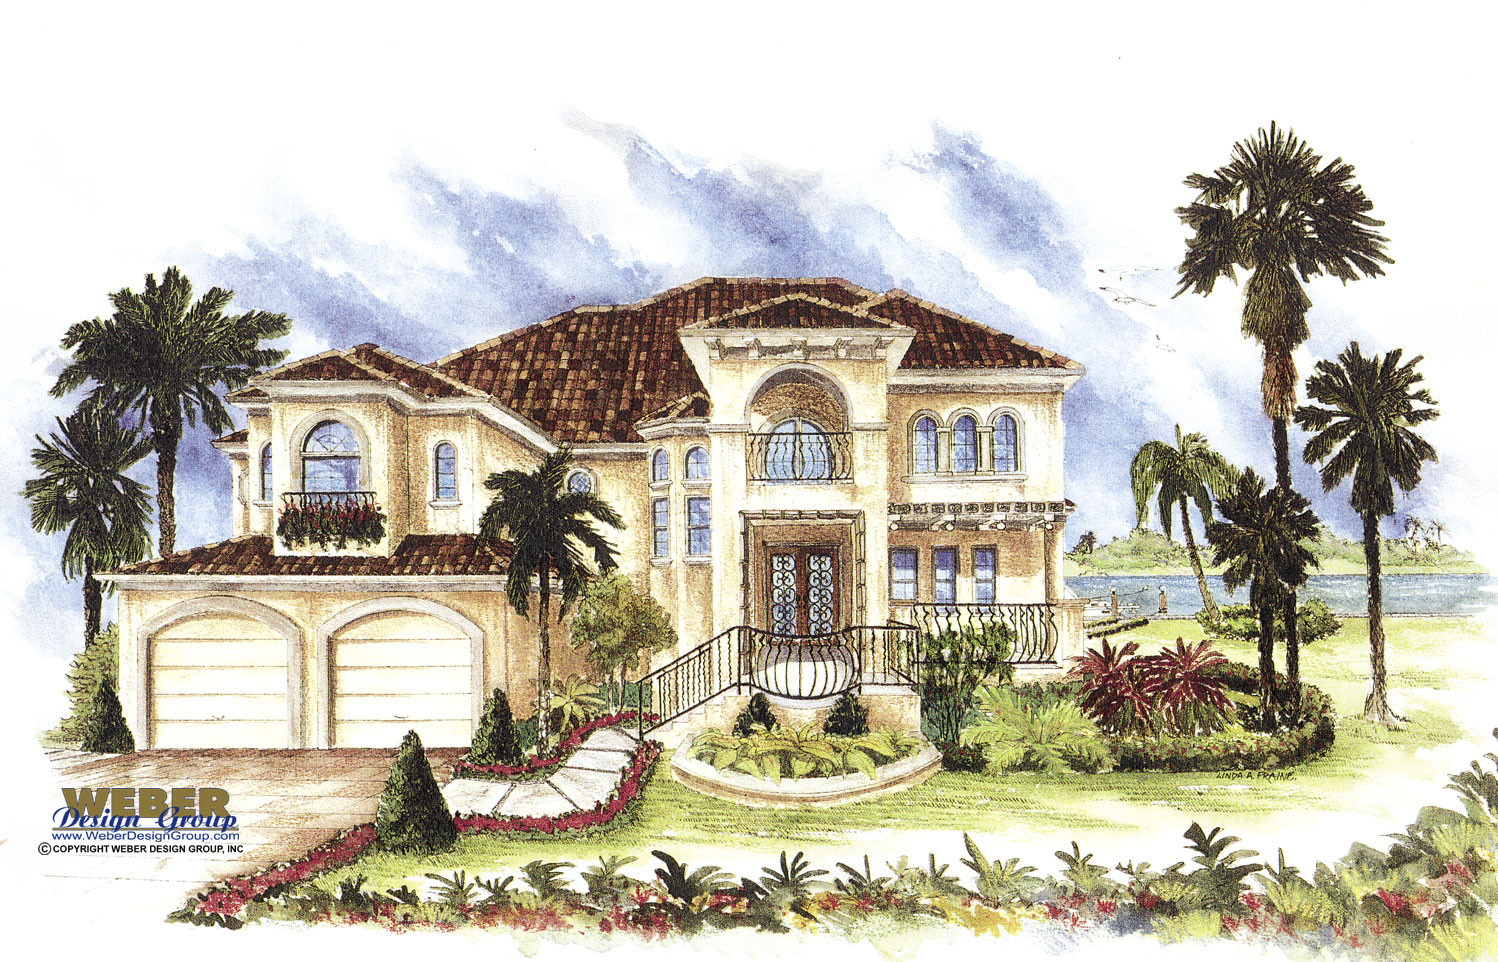 Spanish House Plans  Weber Design Group Inc  Spanish Home - Luxury home designs and floor plans